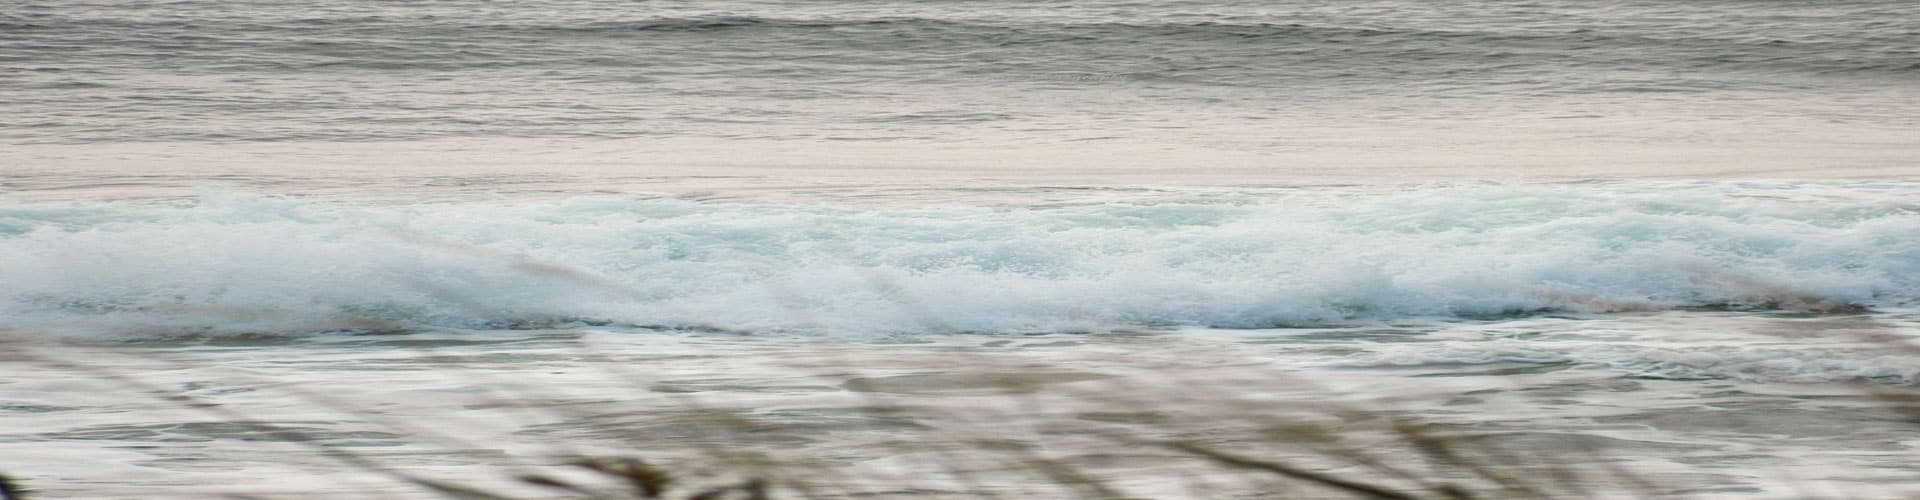 ocean and white surf